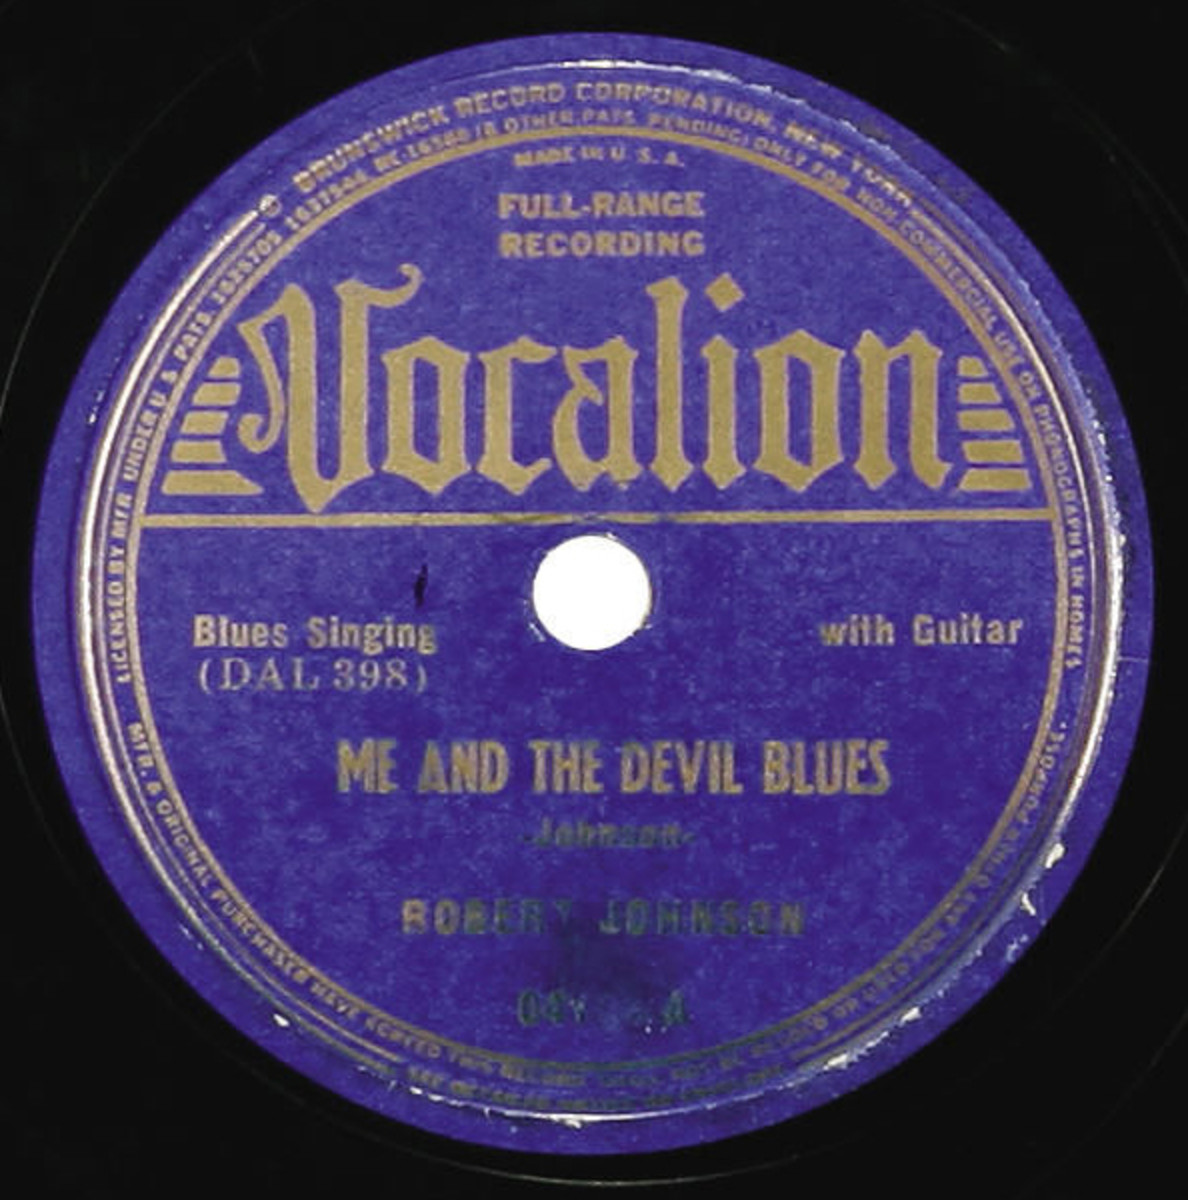 Me And The Devil Blues